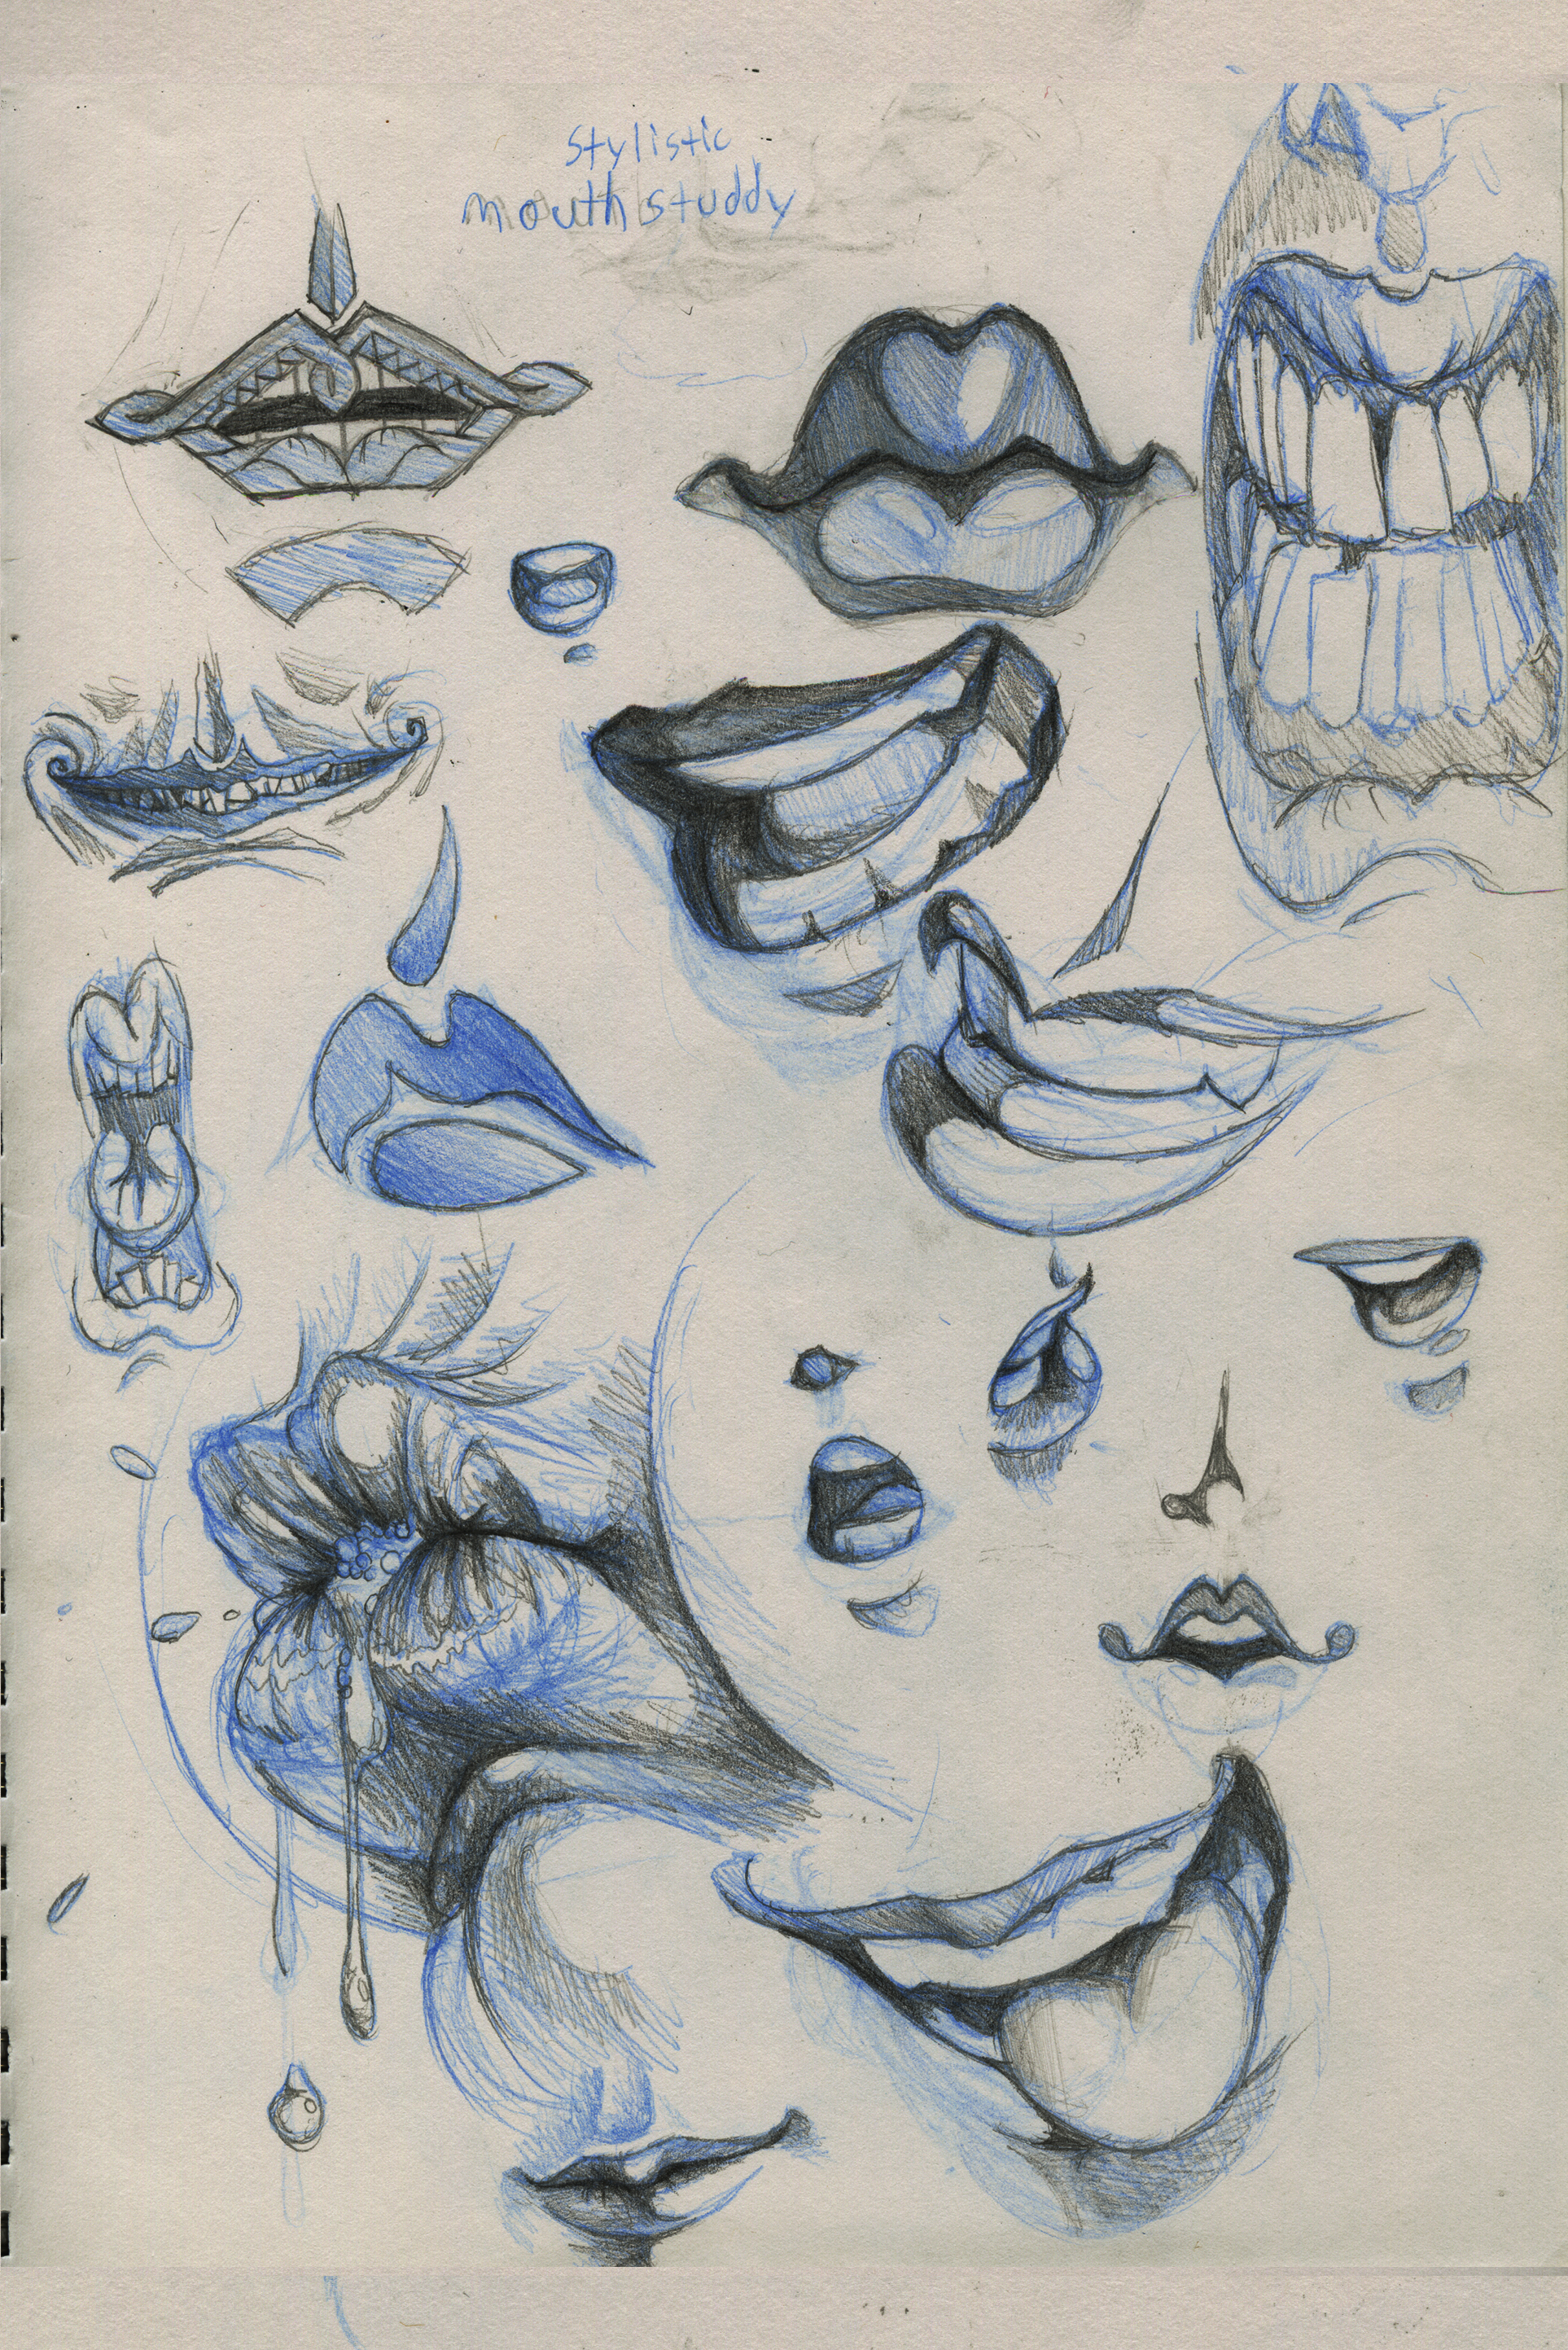 16bb6589b Scott's Character Design Blog » style-mouths